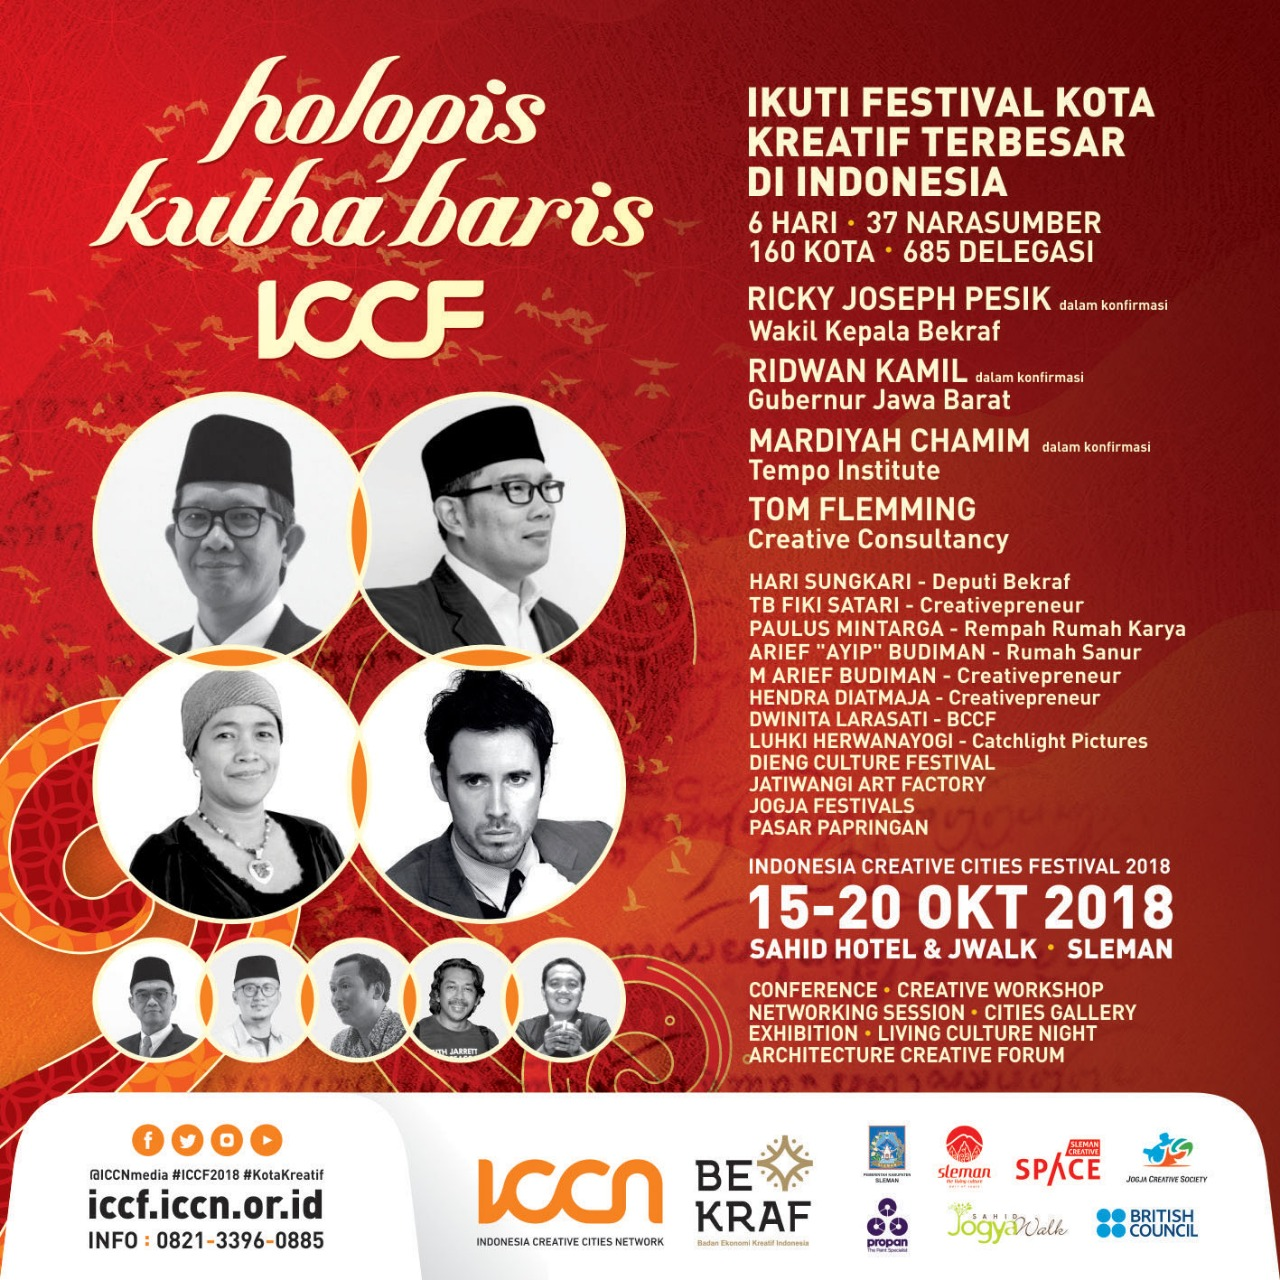 Indonesia Creative Cities Festival 2018 Digelar di Sleman